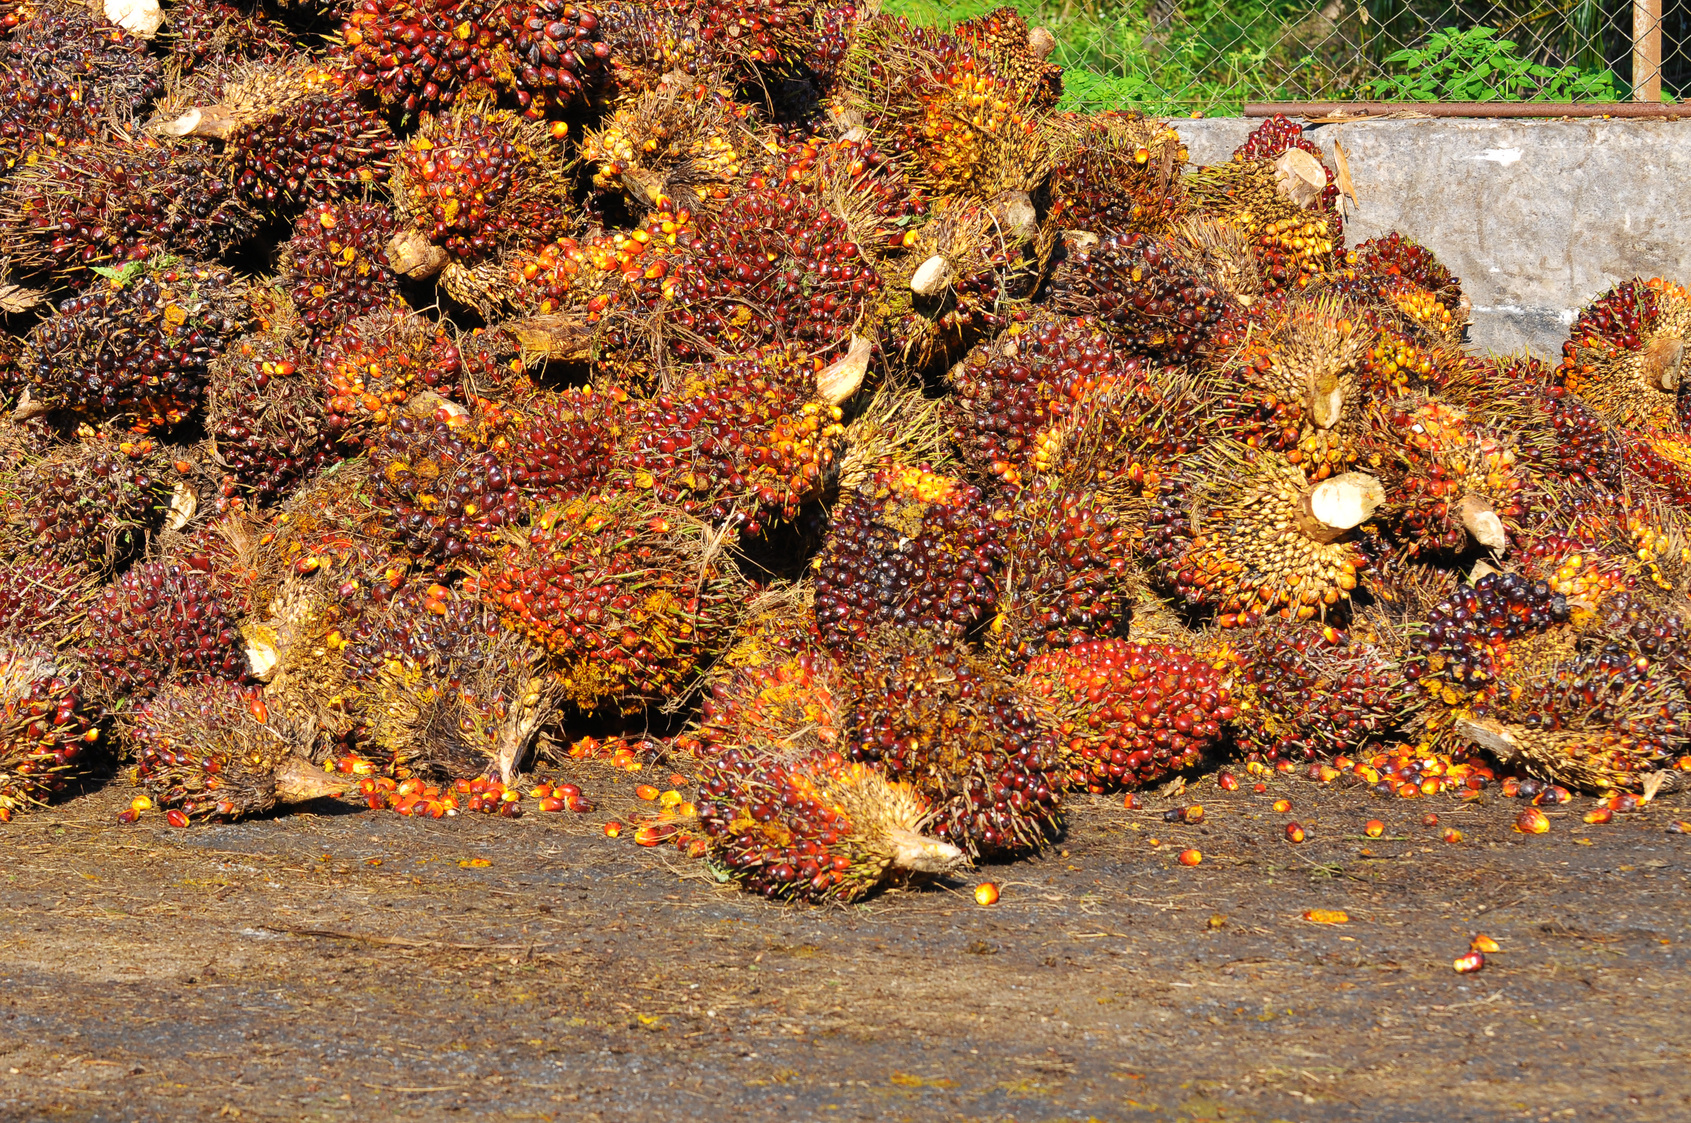 harvested palm oil fruit bunch.